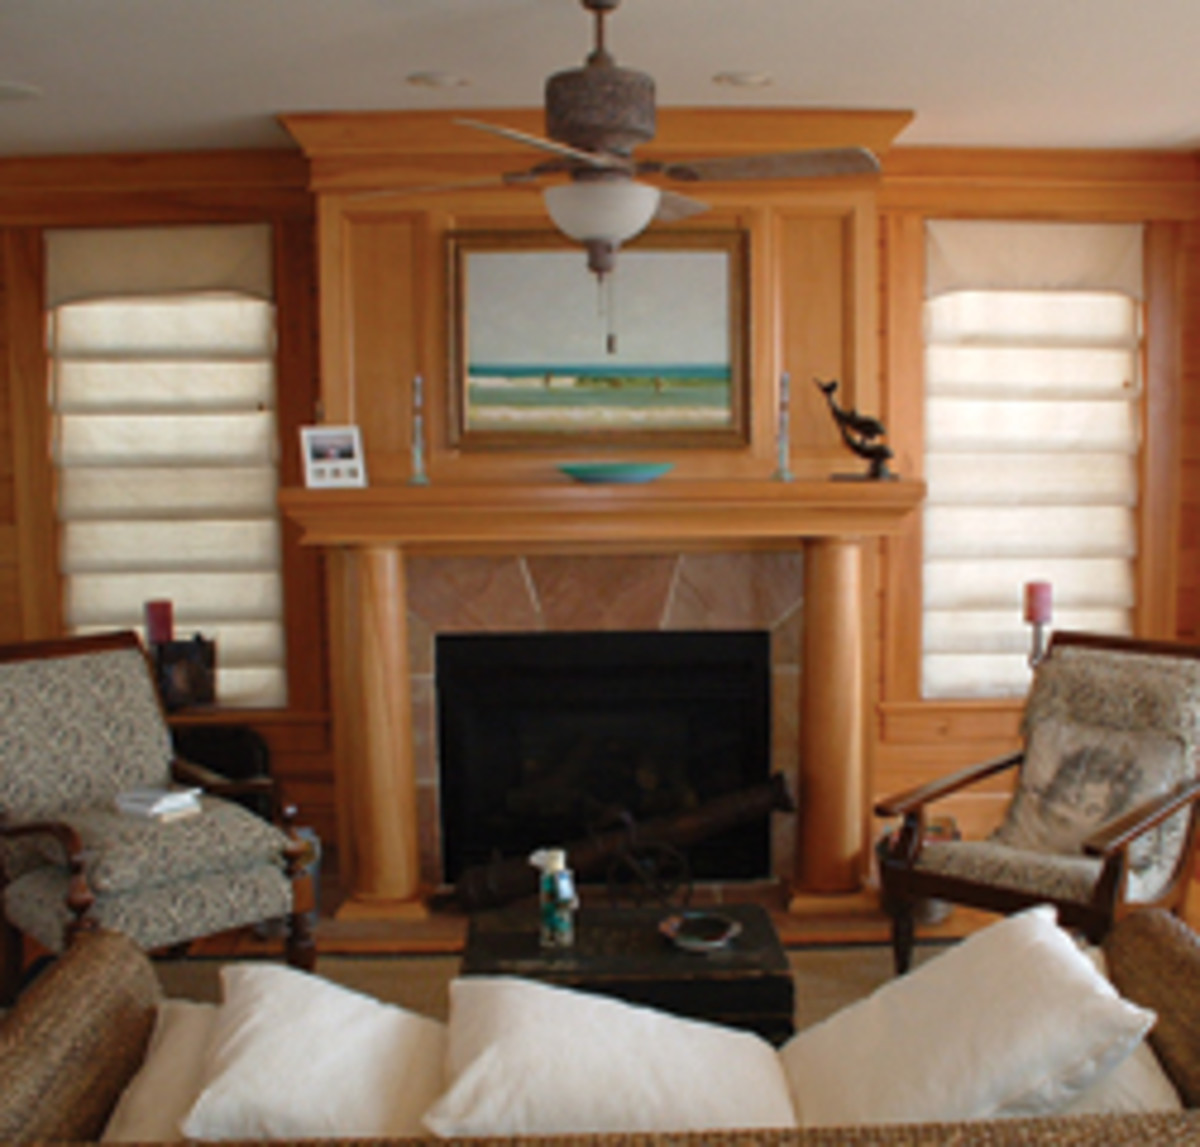 Kitchens, fireplace mantels and built-ins represent the majority of work for Oceanic Ventures.